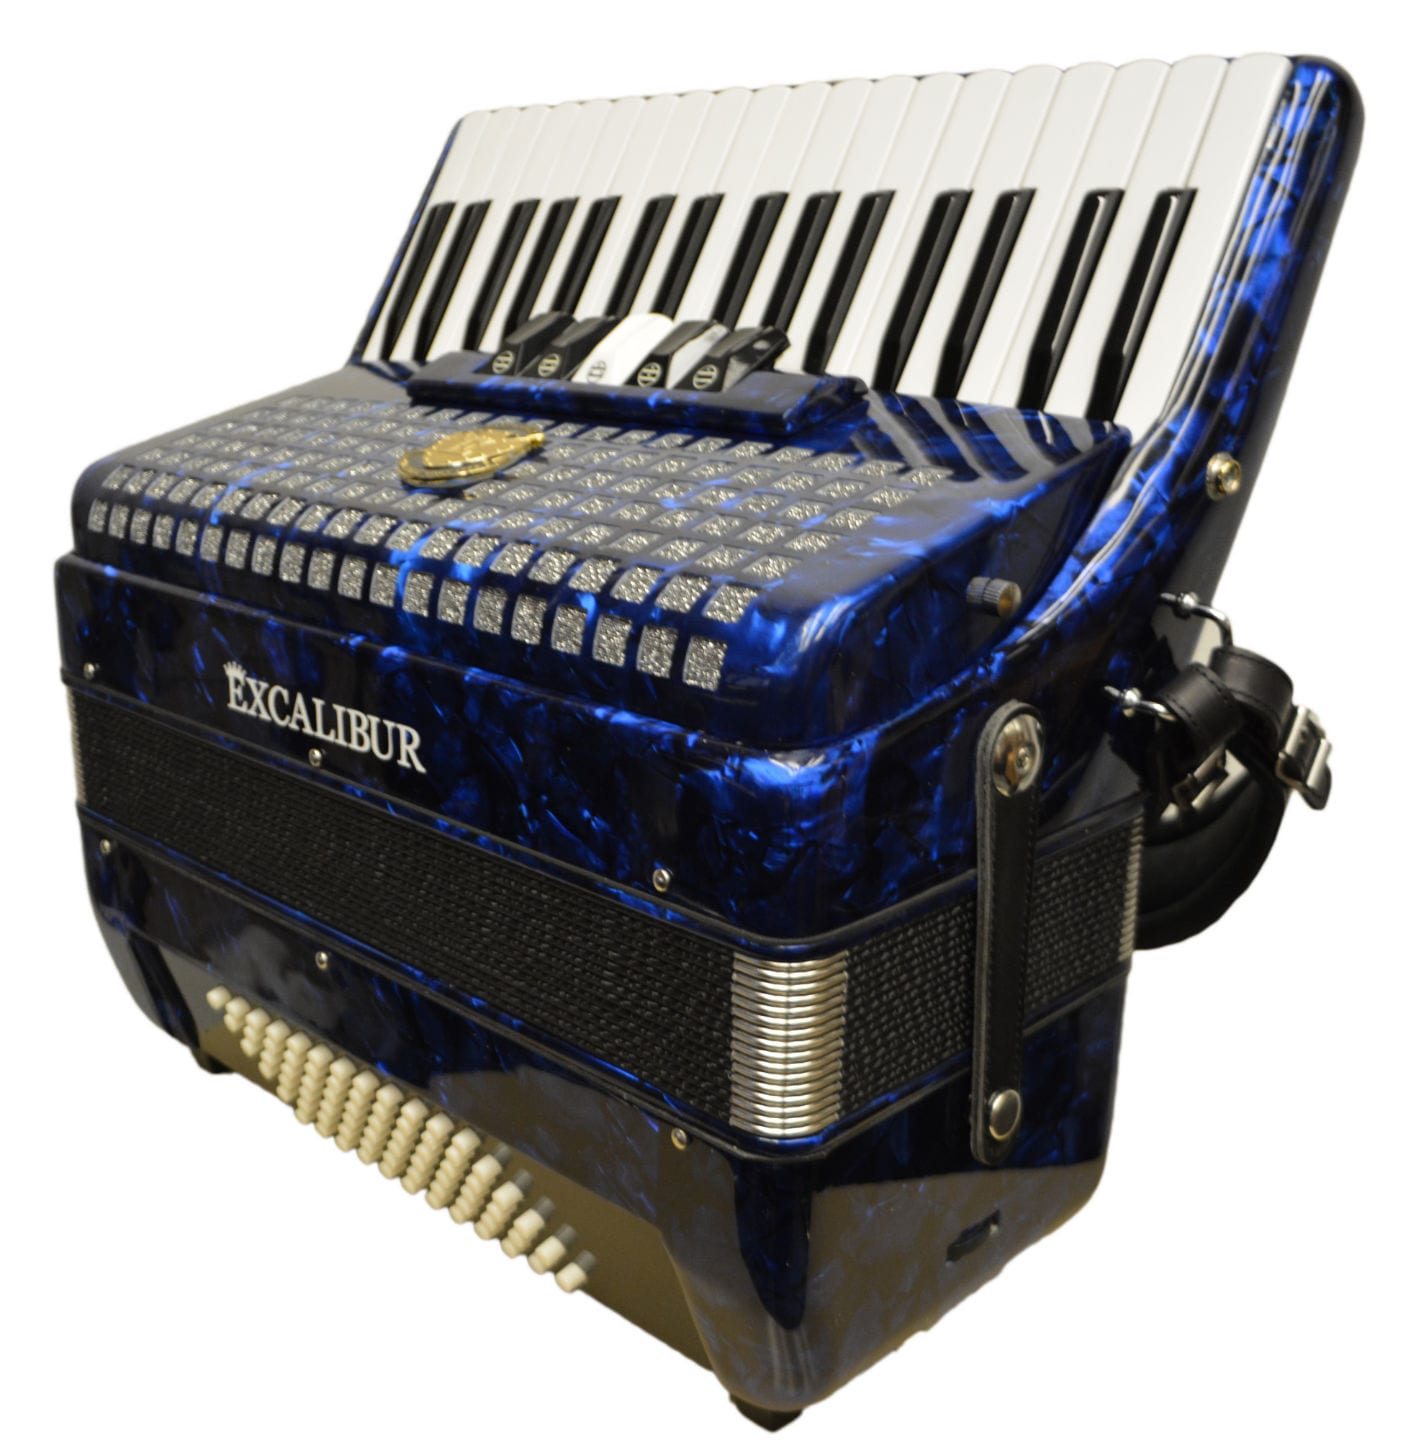 Excalibur Super Classic 72 Bass Accordion - Dark Blue